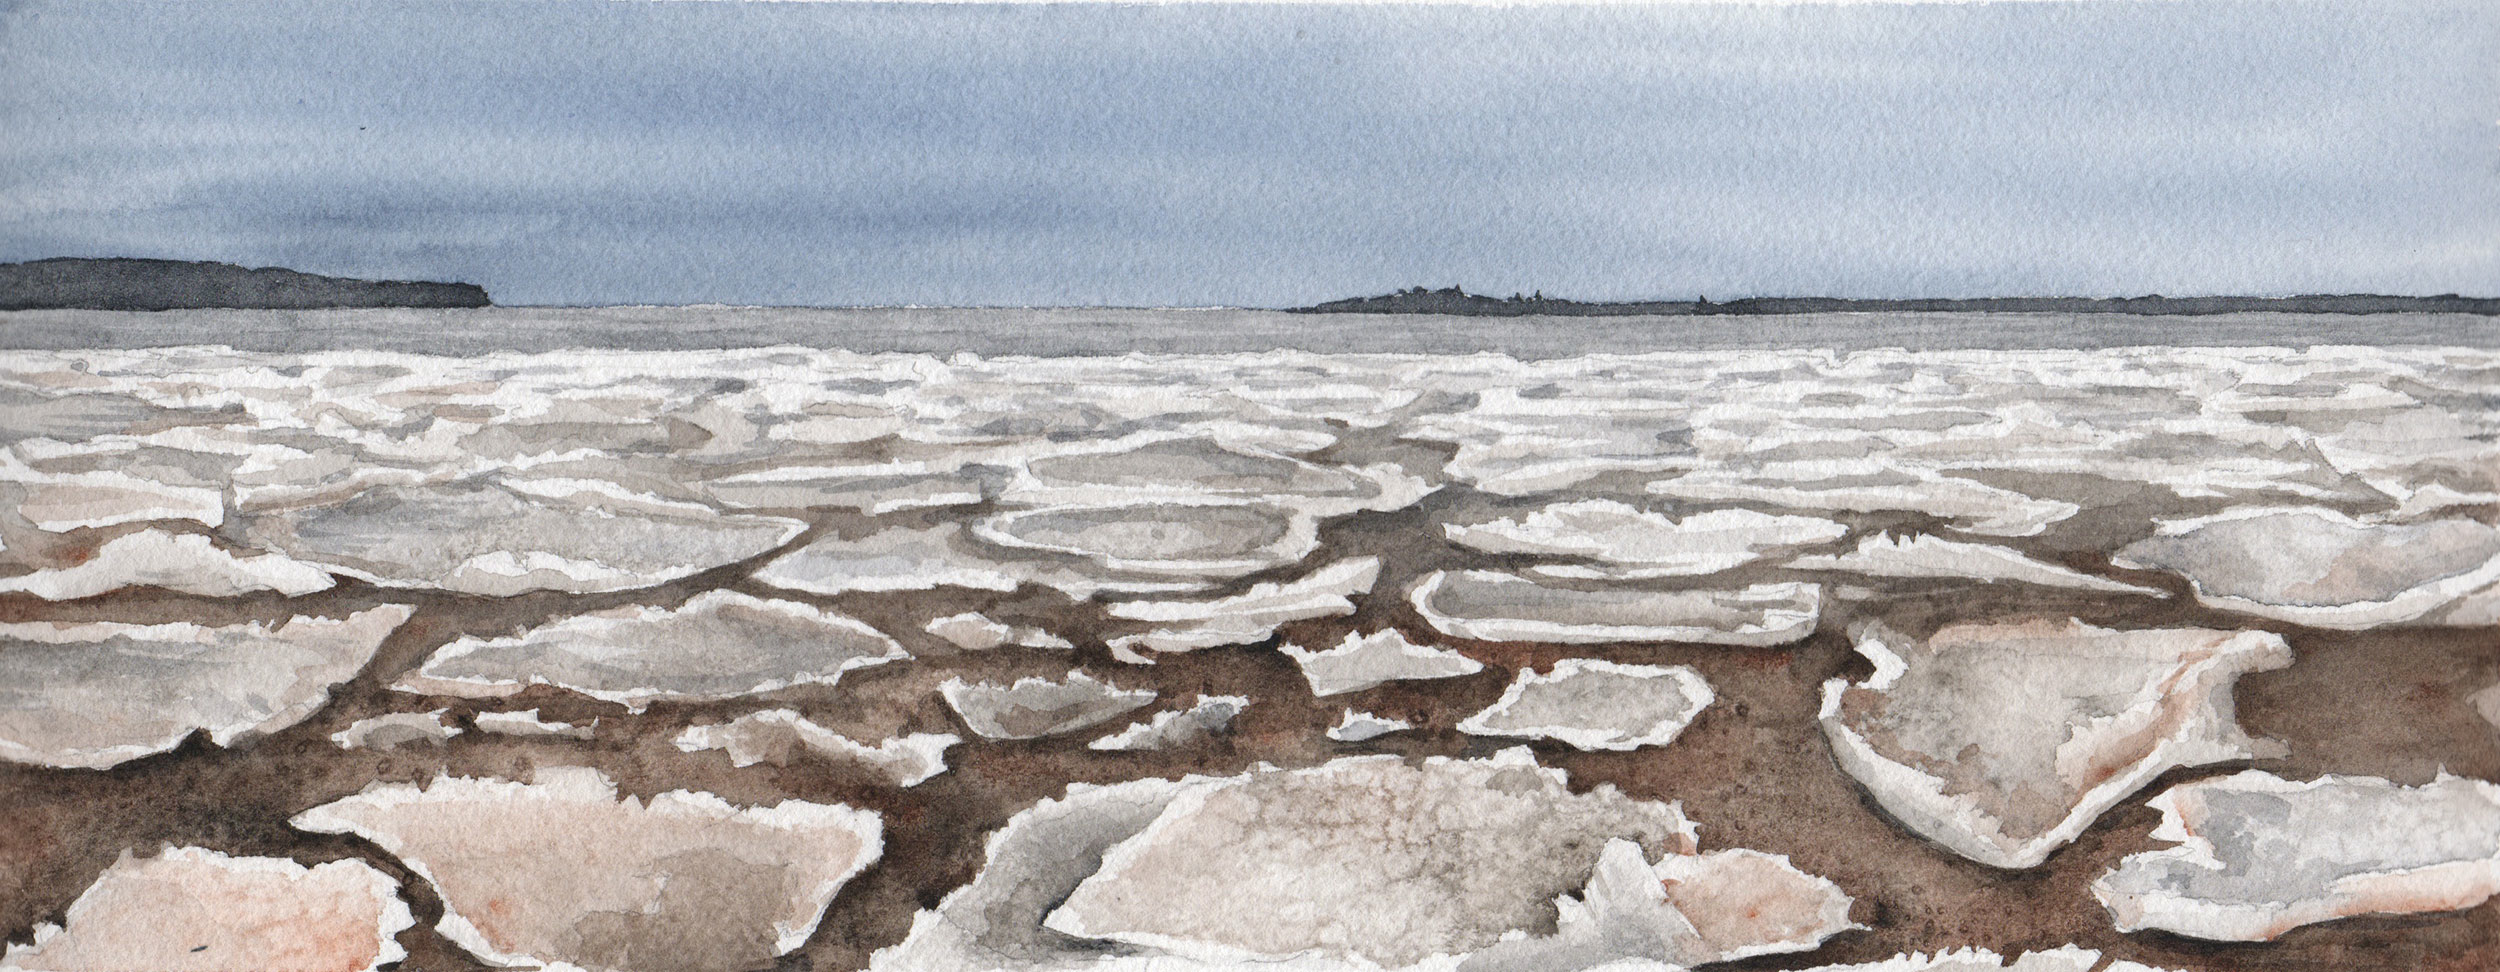 Unlocking, Watercolor, 5x12 inches.  Ice at the mouth of the Sioux River, Madeline and Long Island on the horizon.